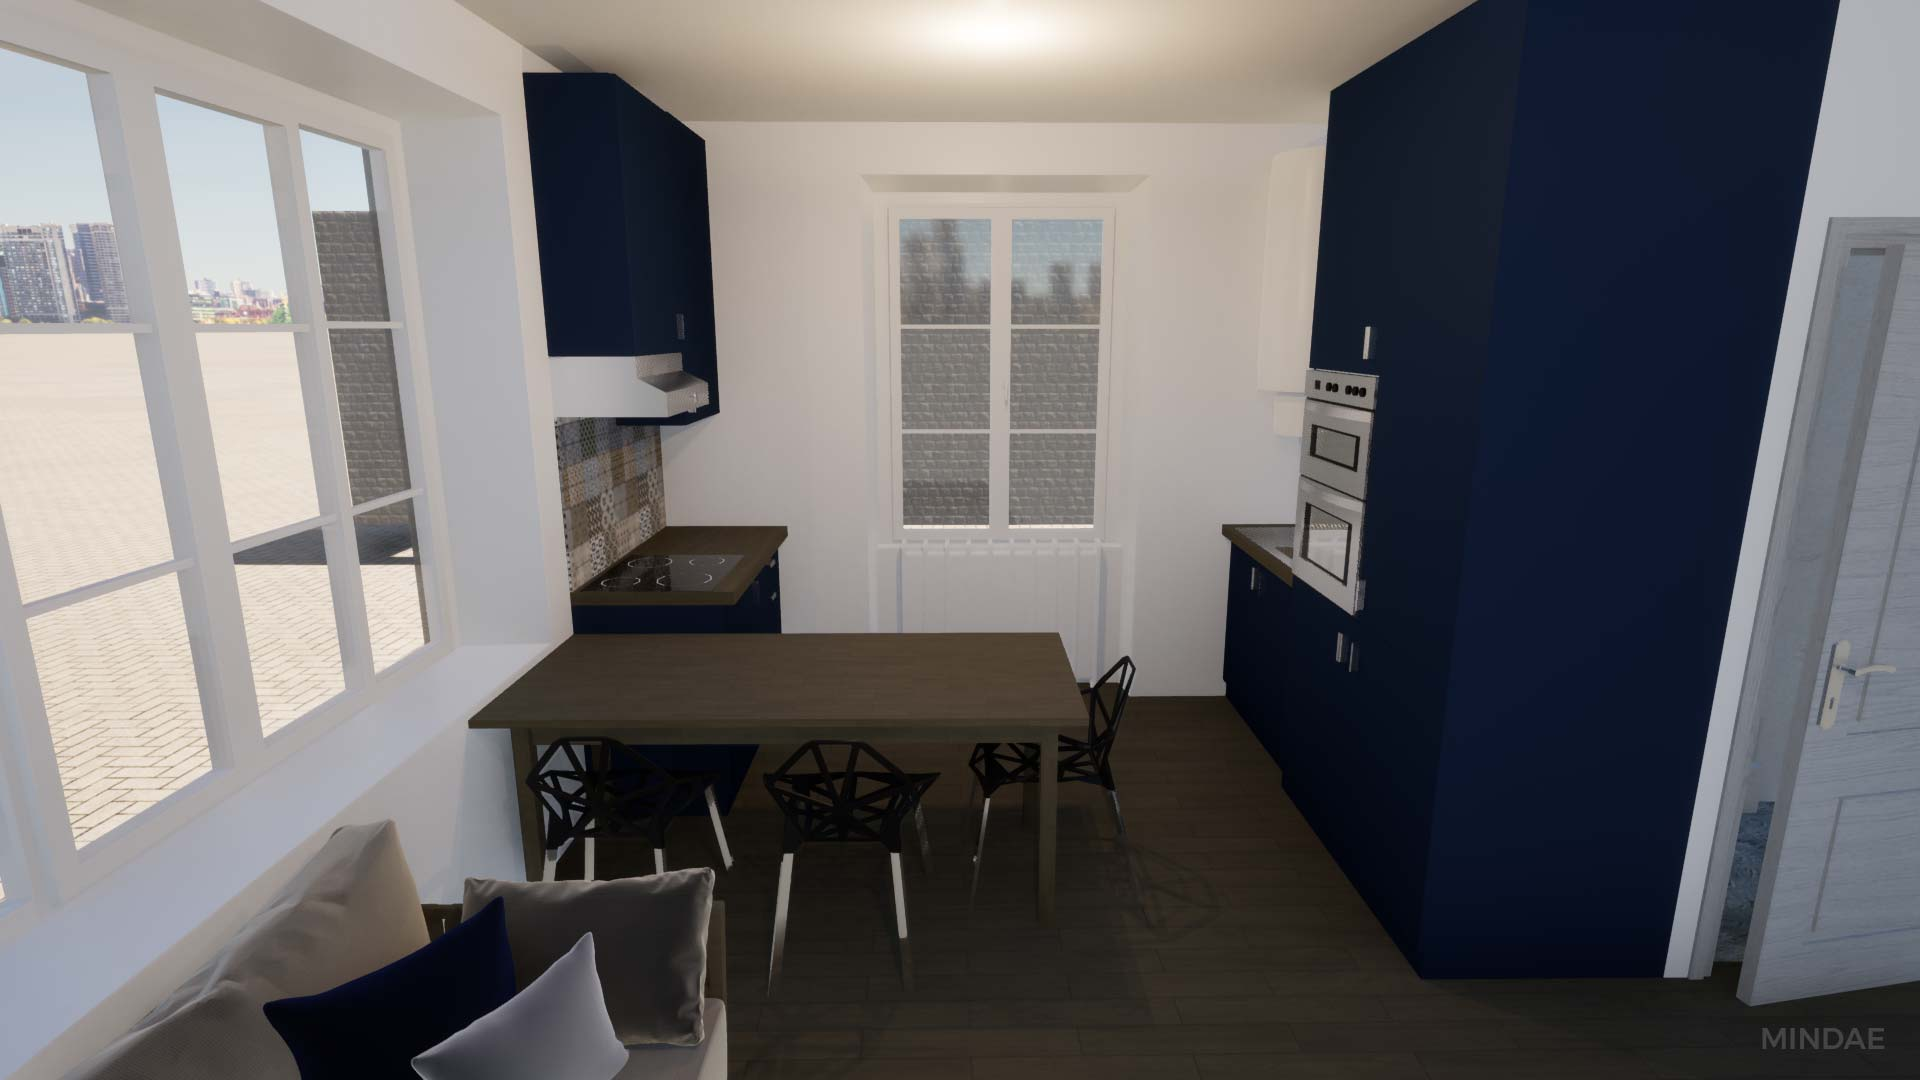 Mindae_3D_appartement_caen_saint_laurent_investisseur_colocation_airbnb_locatif_renovation_F2_F3-(3)